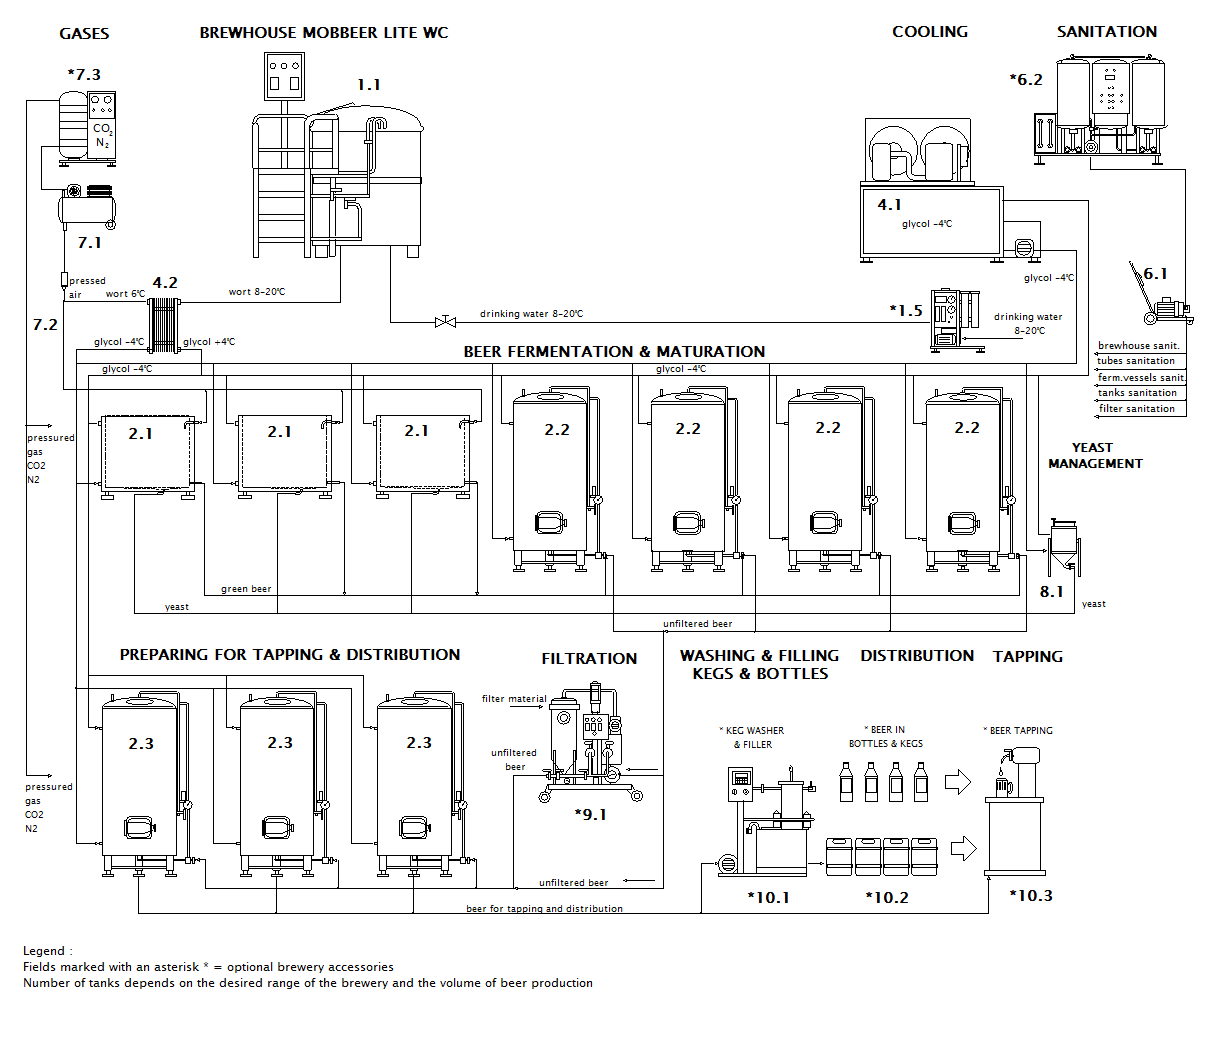 scheme of the container microbrewery MOBBEER LITE WC OF